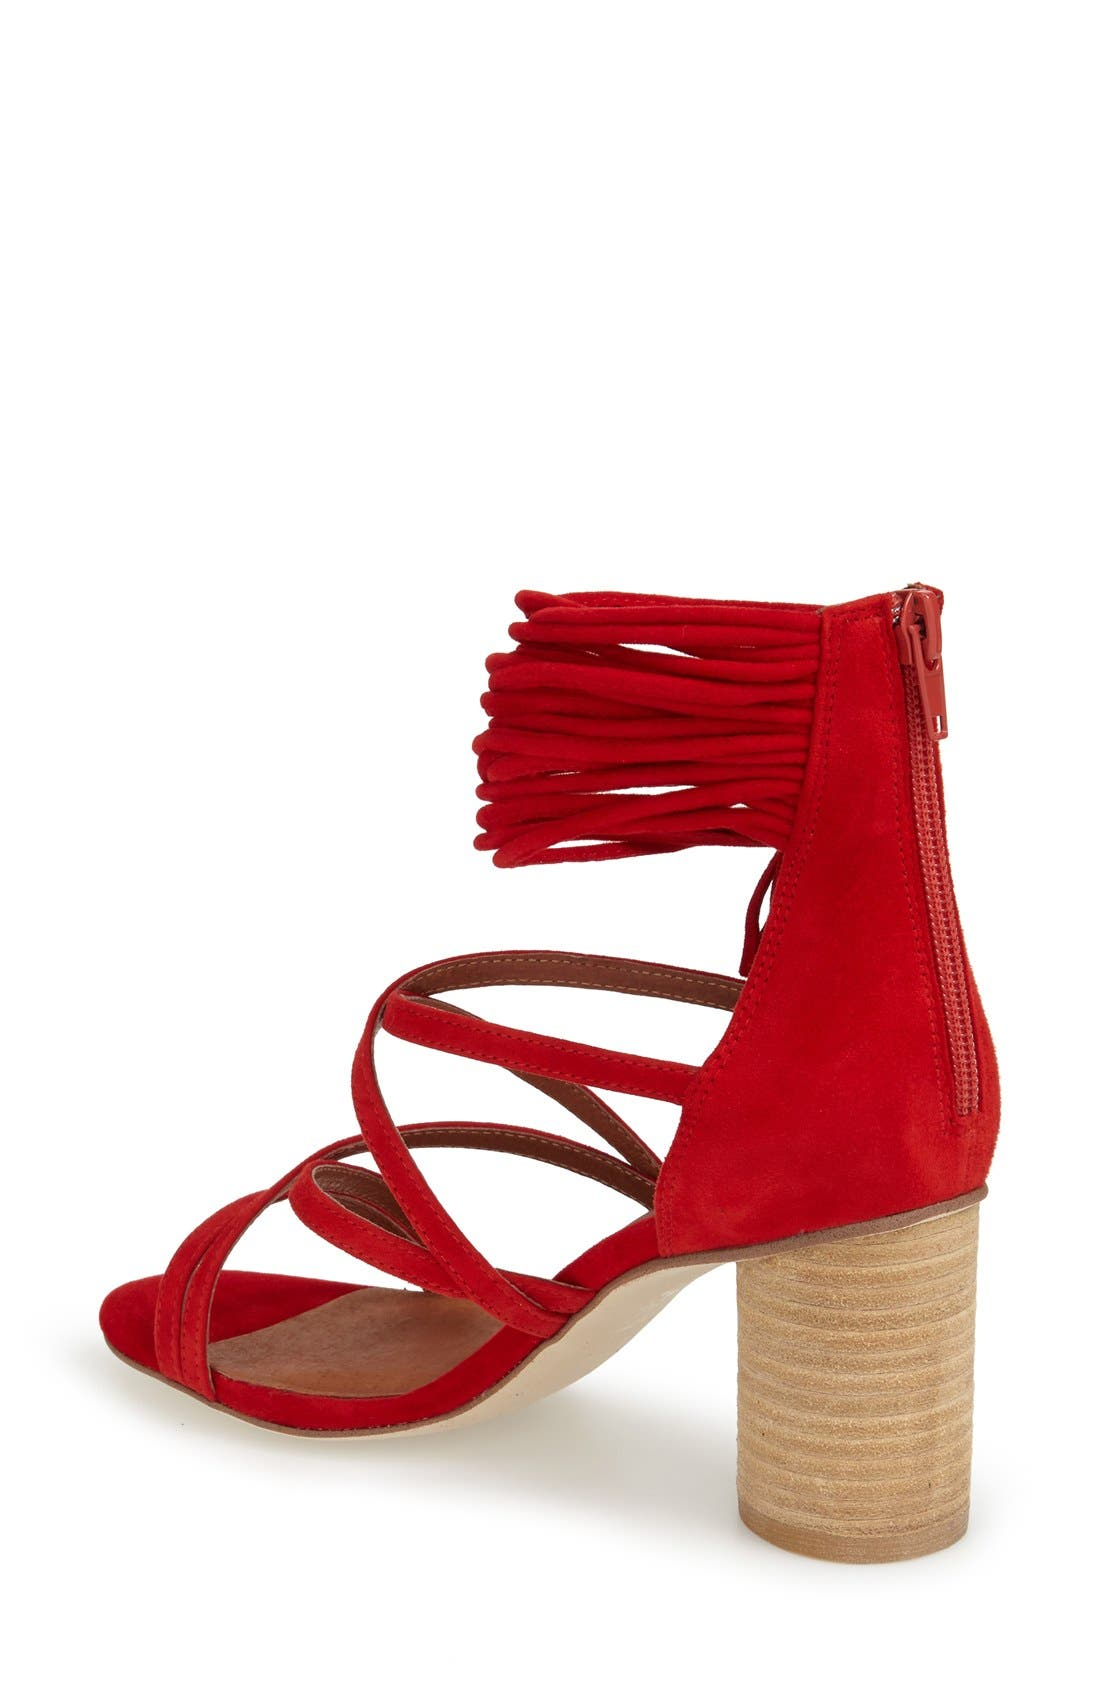 'Despina' Strappy Sandal,                             Alternate thumbnail 2, color,                             Red Suede